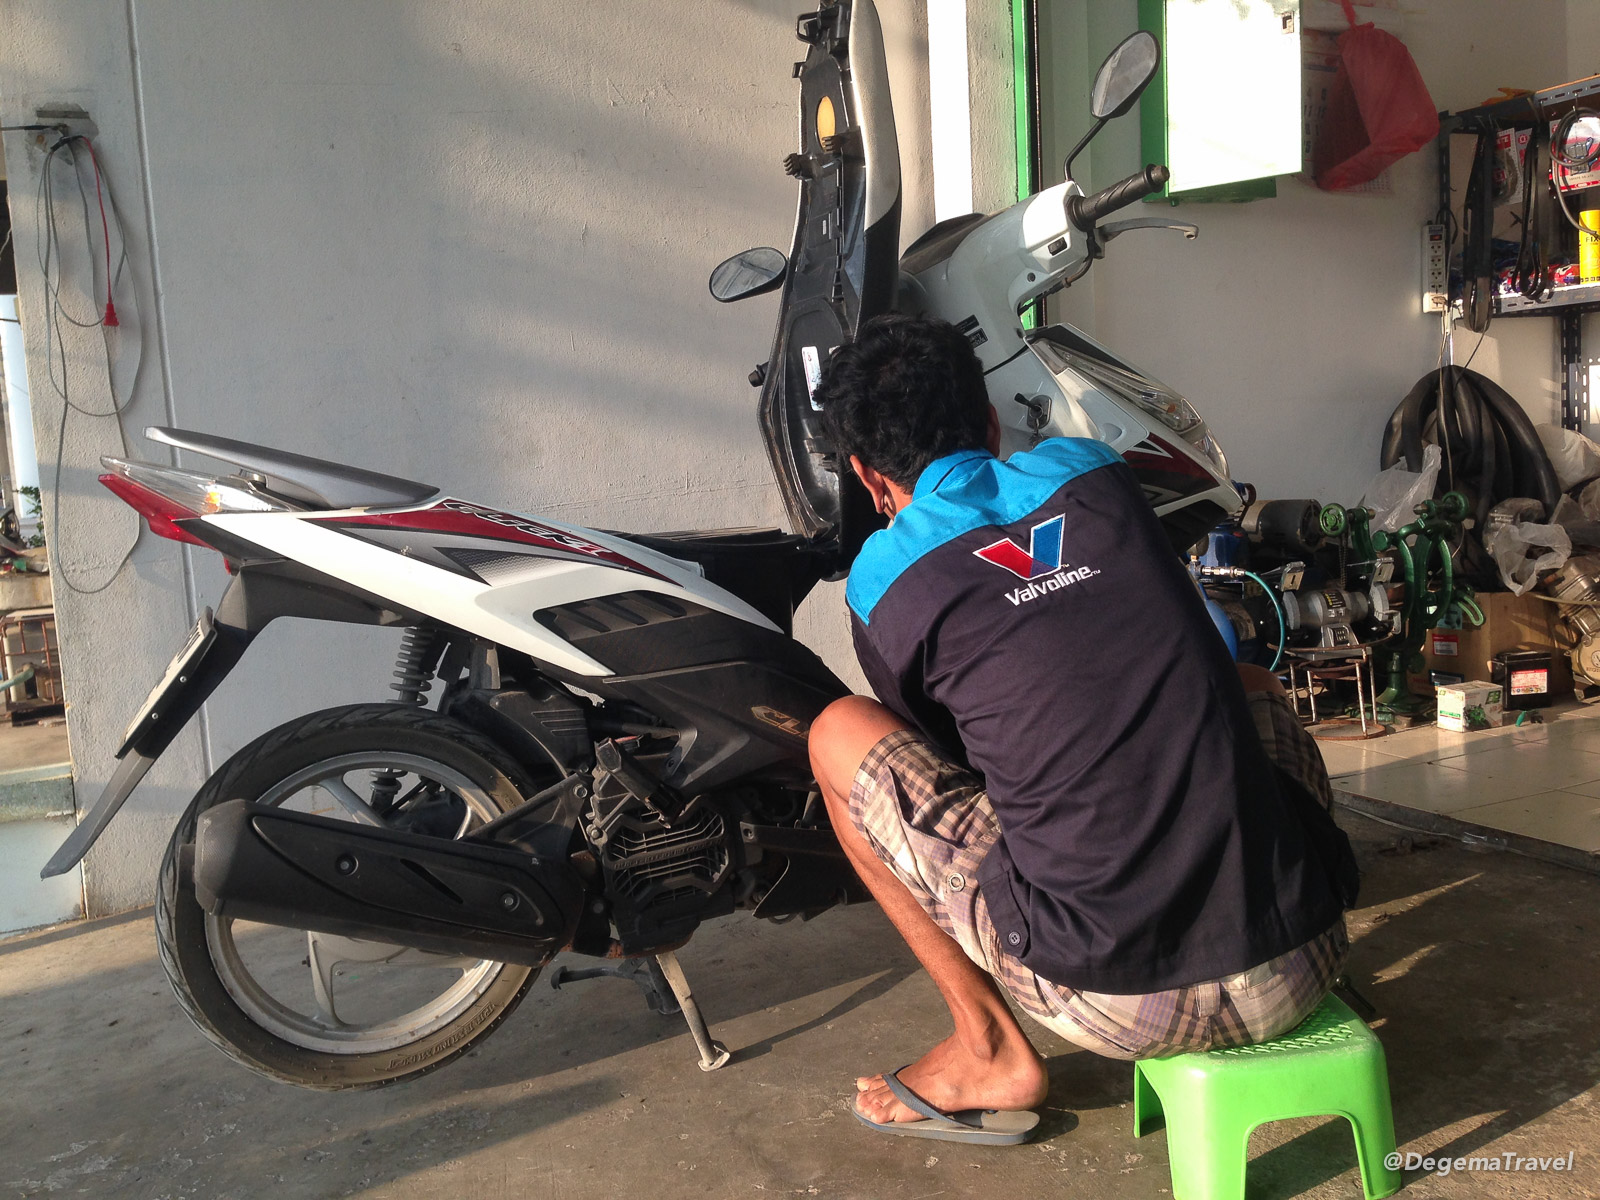 Scooter being repaired in Phuket, Thailand